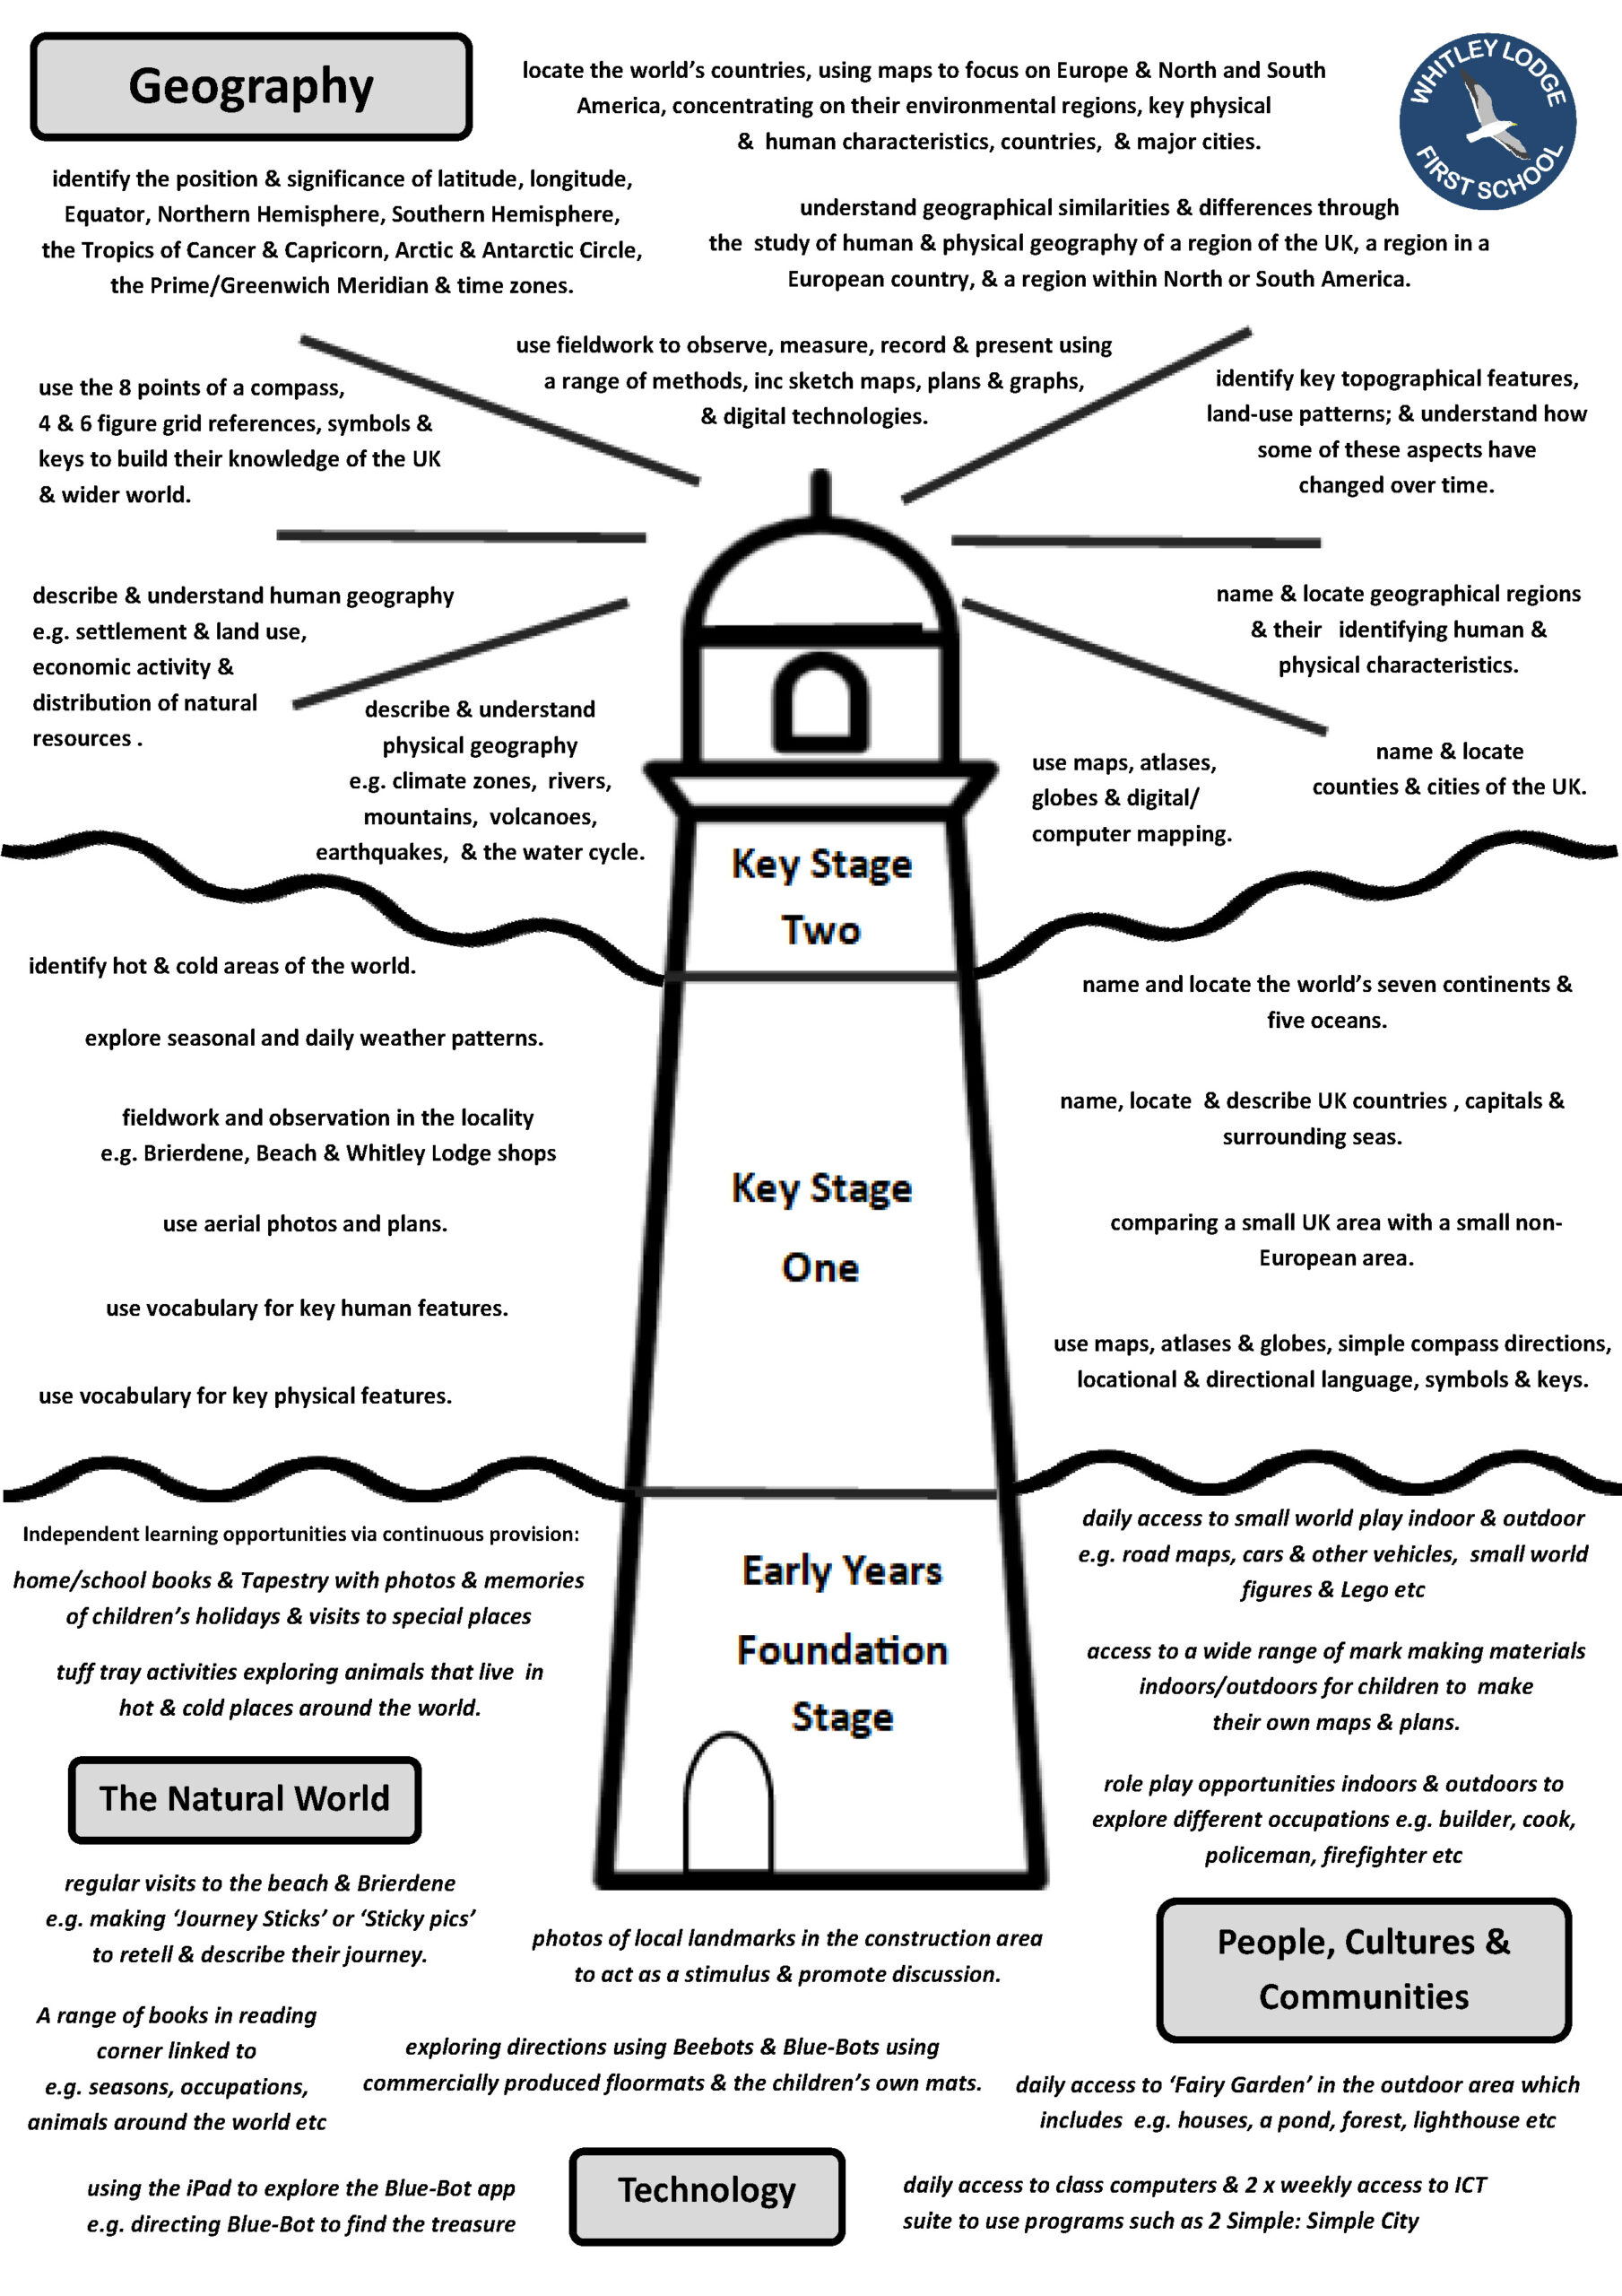 WLFS Geography Learning Lighthouse PDF